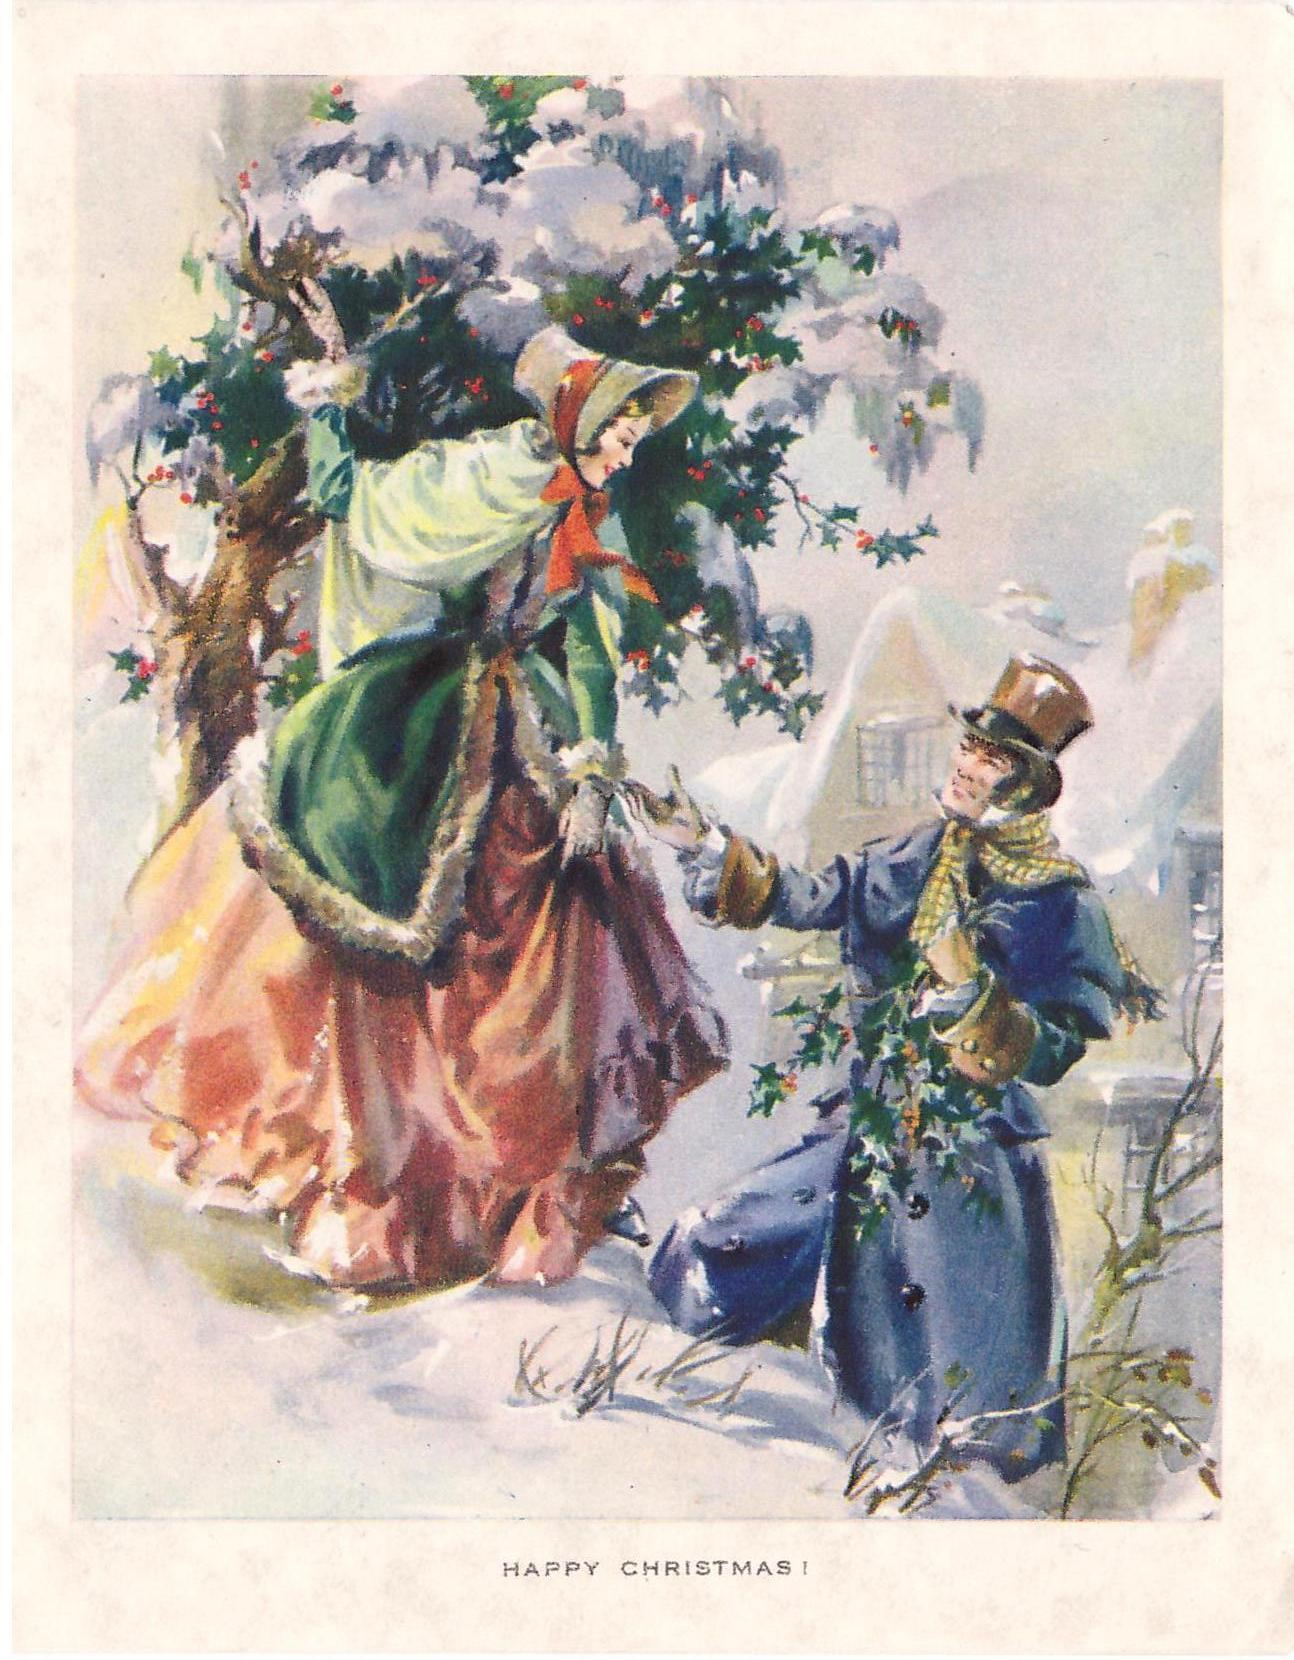 happy christmas  couple in old style dress gather holly  houses in background  snow